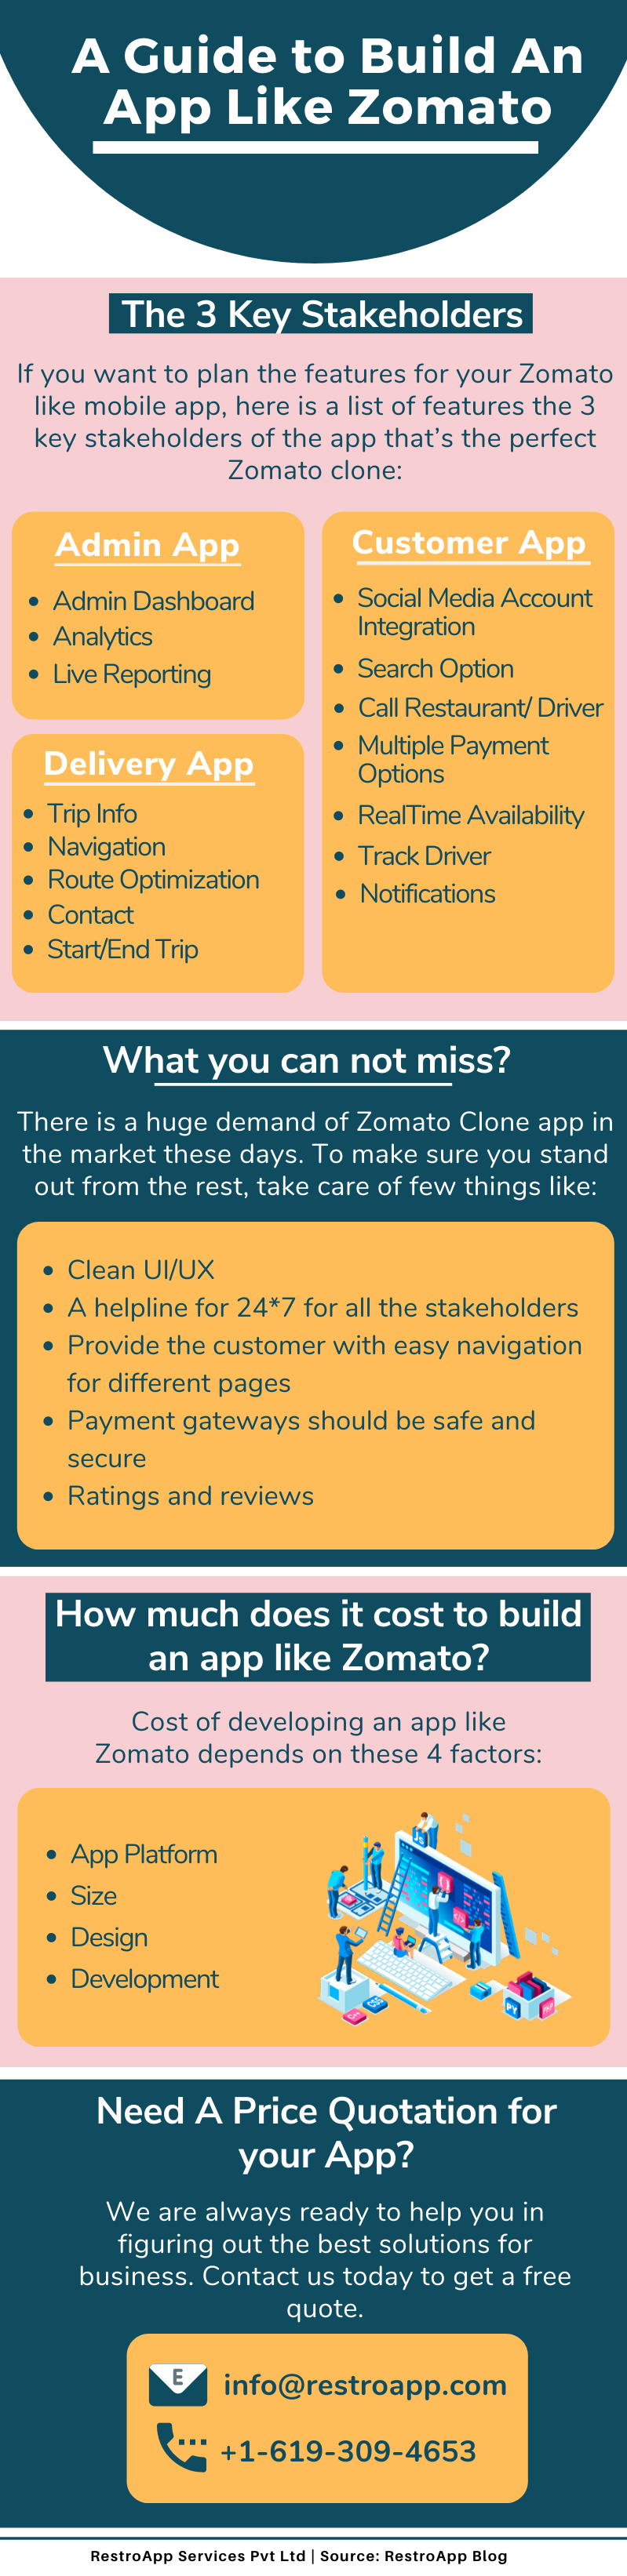 A complete guide to build an app like zomato - RestroApp